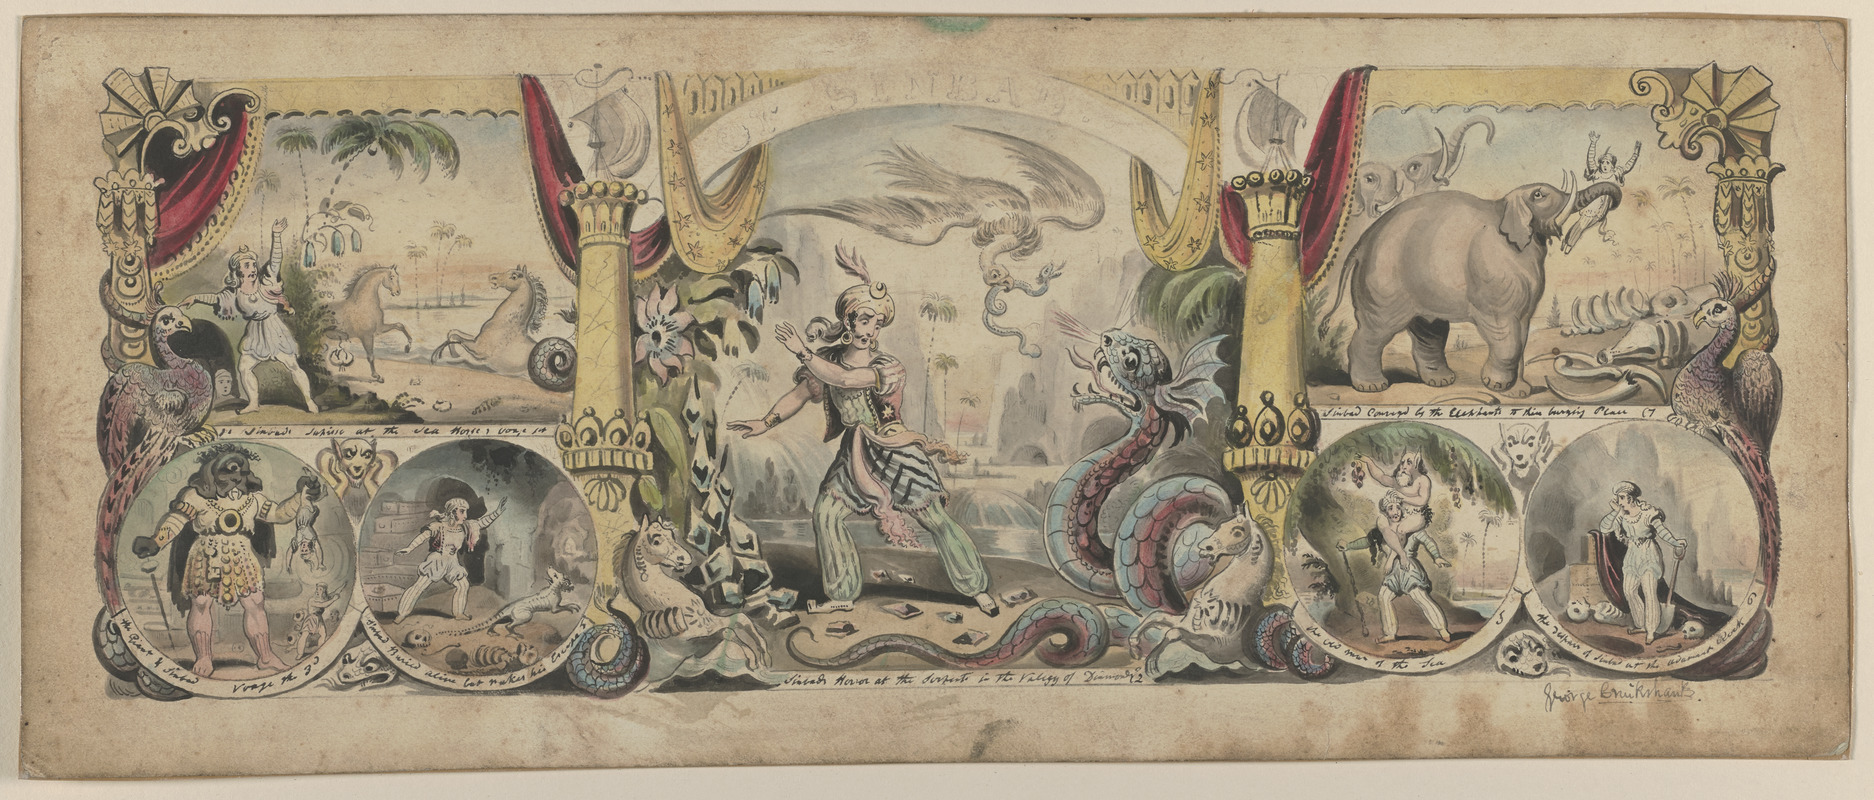 """Original watercolor drawing used as frontispiece of """"The Seven Voyages and Adventures of Sinbad the Sailor"""""""